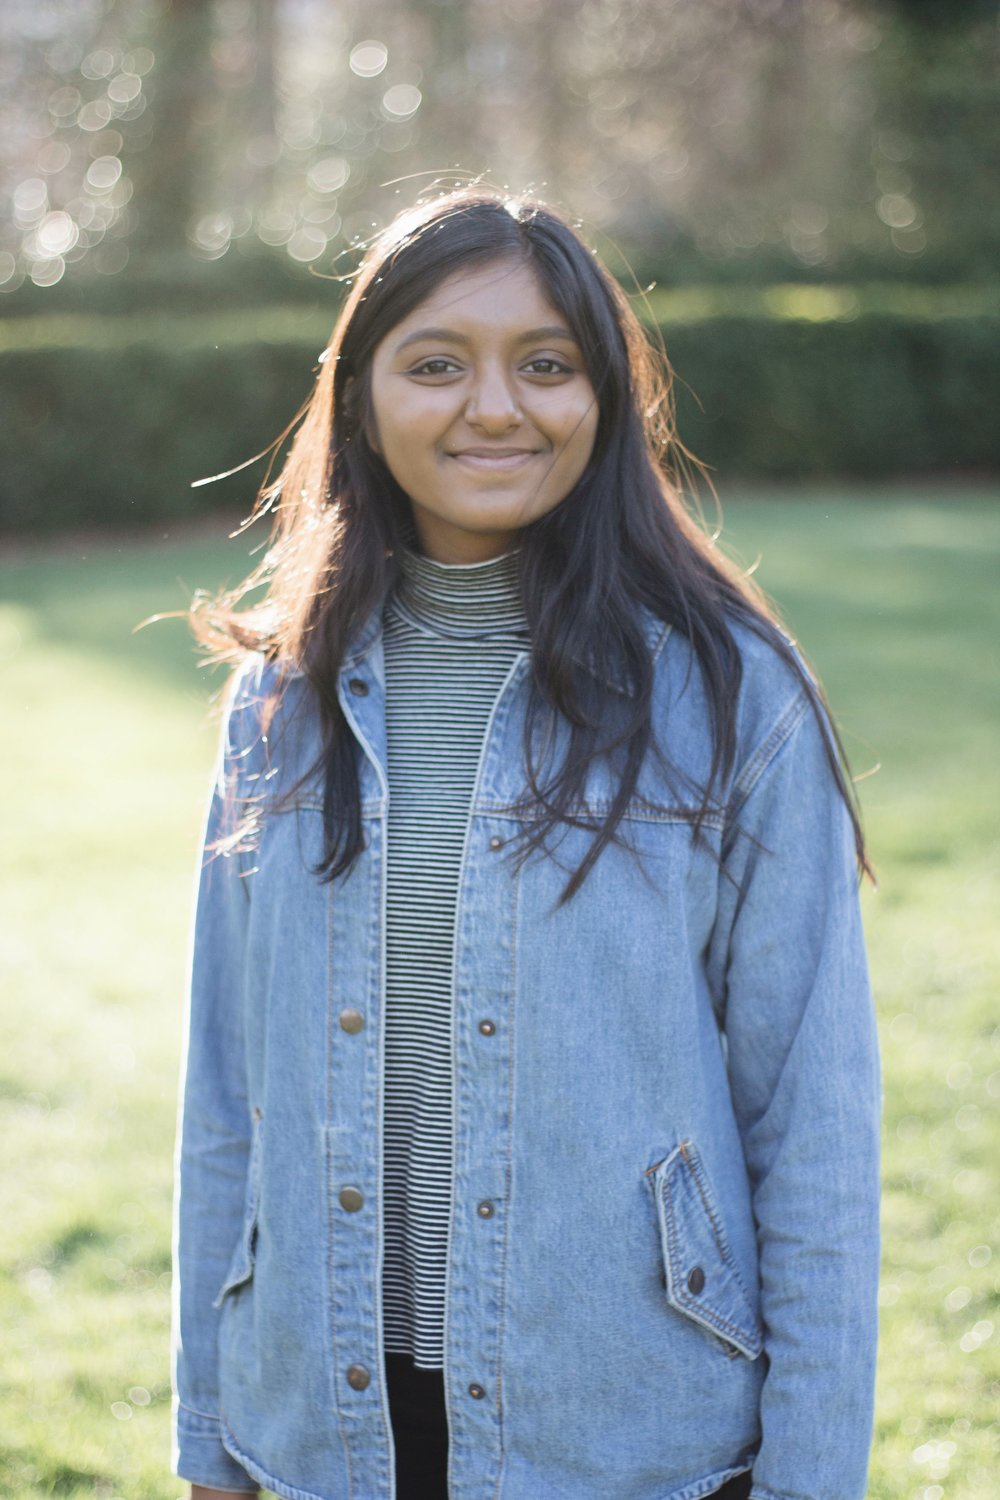 Lahari Pullakhandam is a sophomore from Cary, NC studying computer science. Contact her at sitalahari@gmail.com to get involved with The Superhero Project graphics committee.